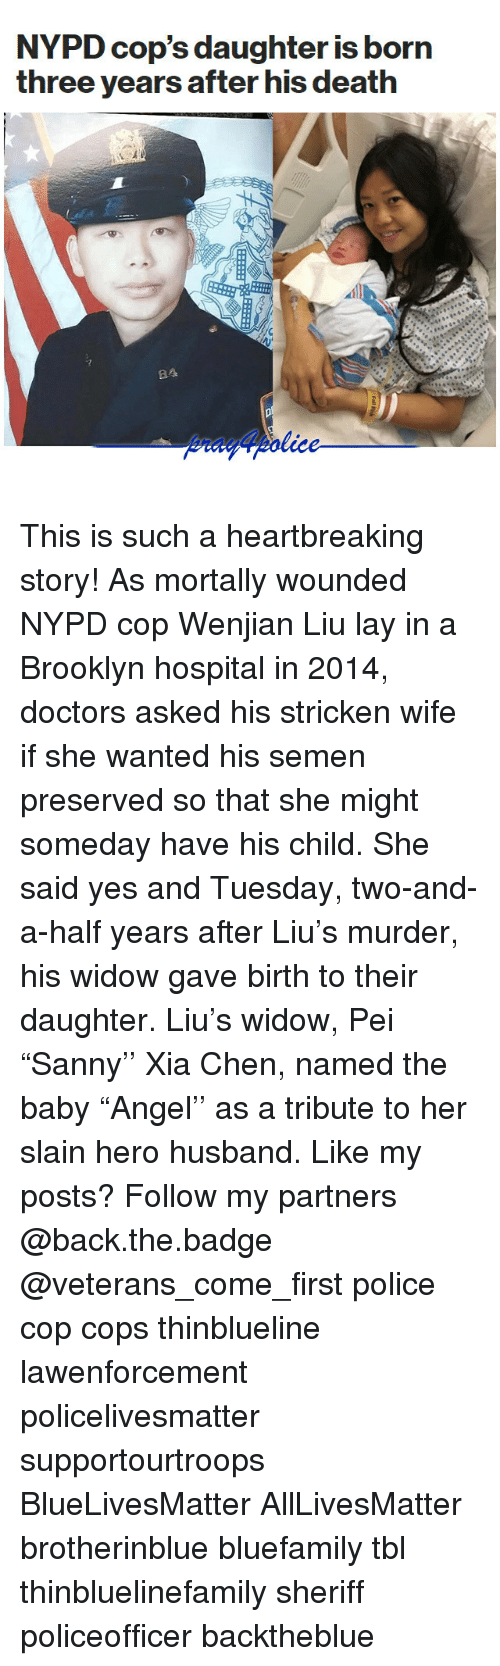 "All Lives Matter, Memes, and Police: NYPD cop's daughter is born  three years after his death  84 This is such a heartbreaking story! As mortally wounded NYPD cop Wenjian Liu lay in a Brooklyn hospital in 2014, doctors asked his stricken wife if she wanted his semen preserved so that she might someday have his child. She said yes and Tuesday, two-and-a-half years after Liu's murder, his widow gave birth to their daughter. Liu's widow, Pei ""Sanny'' Xia Chen, named the baby ""Angel'' as a tribute to her slain hero husband. Like my posts? Follow my partners @back.the.badge @veterans_сome_first police cop cops thinblueline lawenforcement policelivesmatter supportourtroops BlueLivesMatter AllLivesMatter brotherinblue bluefamily tbl thinbluelinefamily sheriff policeofficer backtheblue"